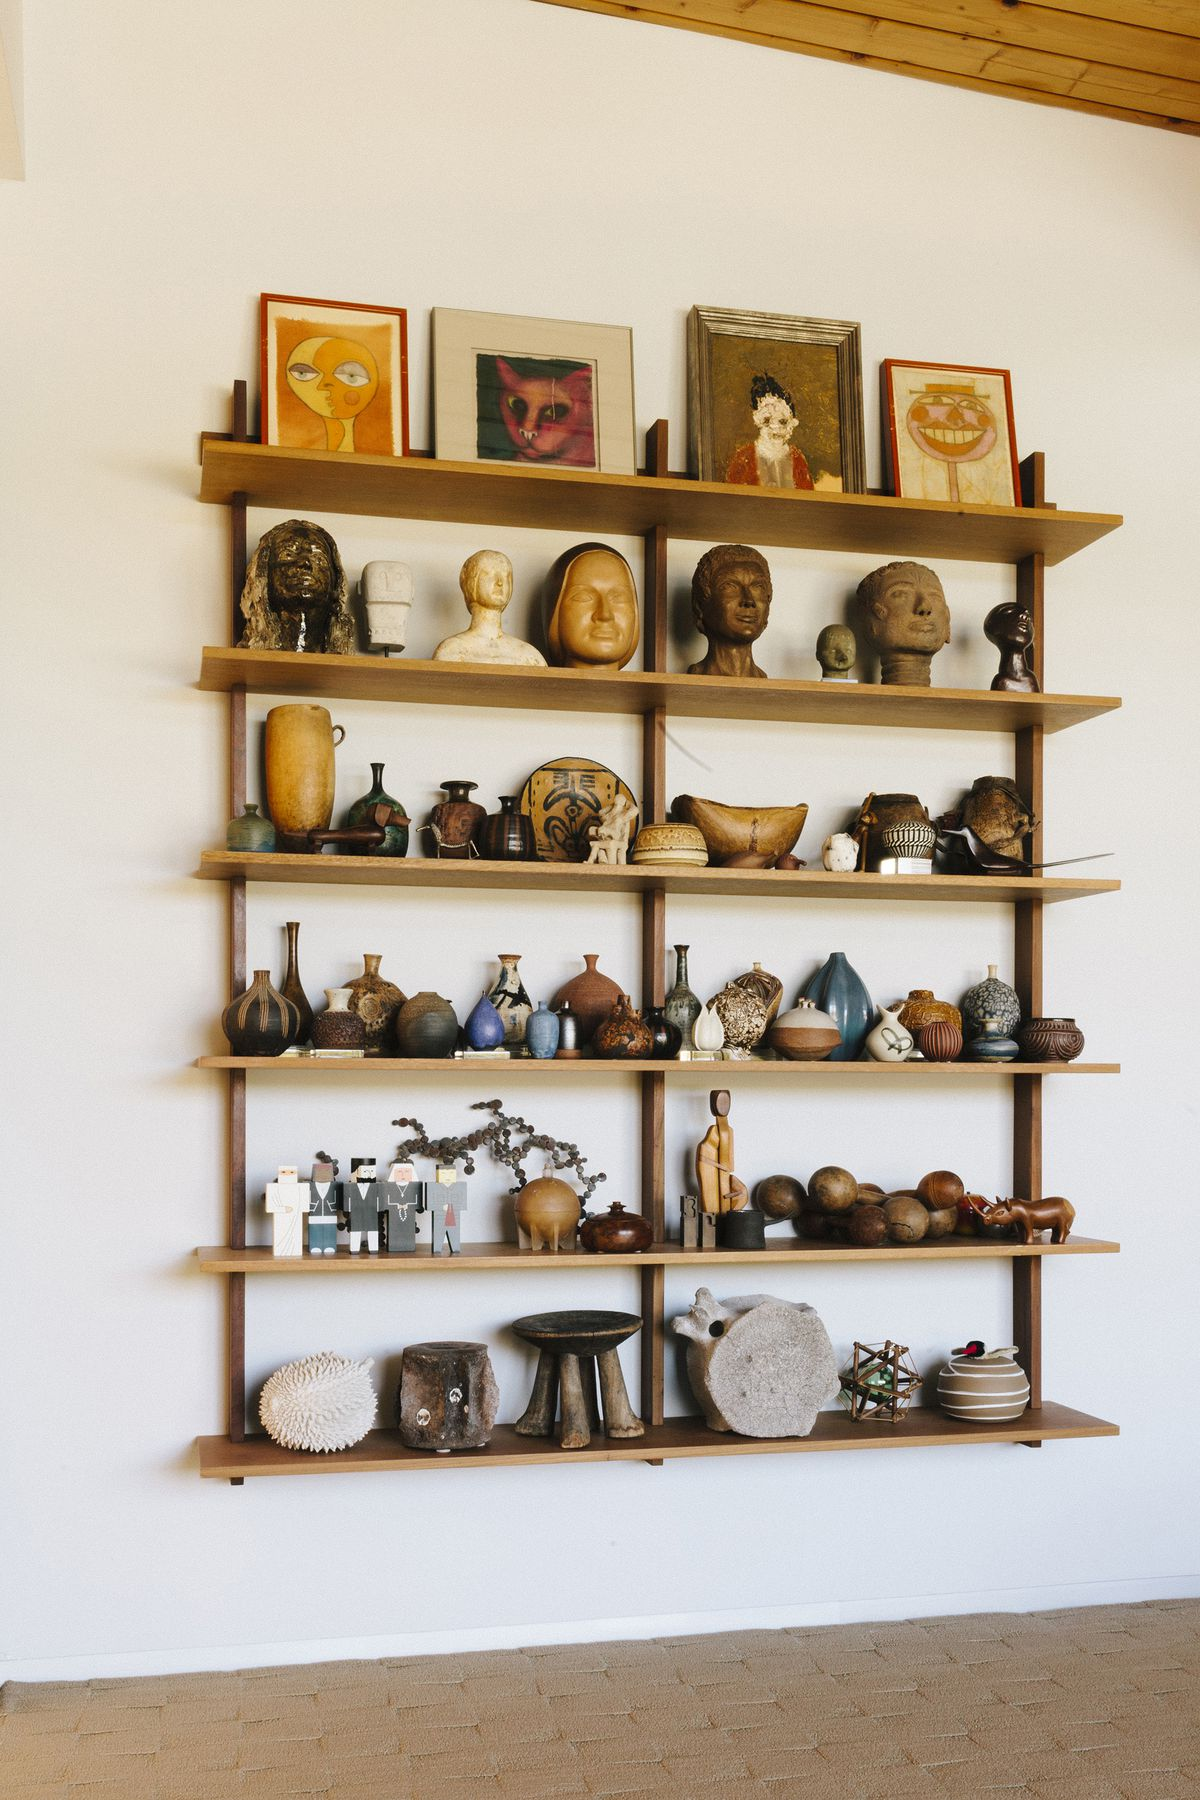 Wooden shelves with various art objects and framed prints against a white wall.